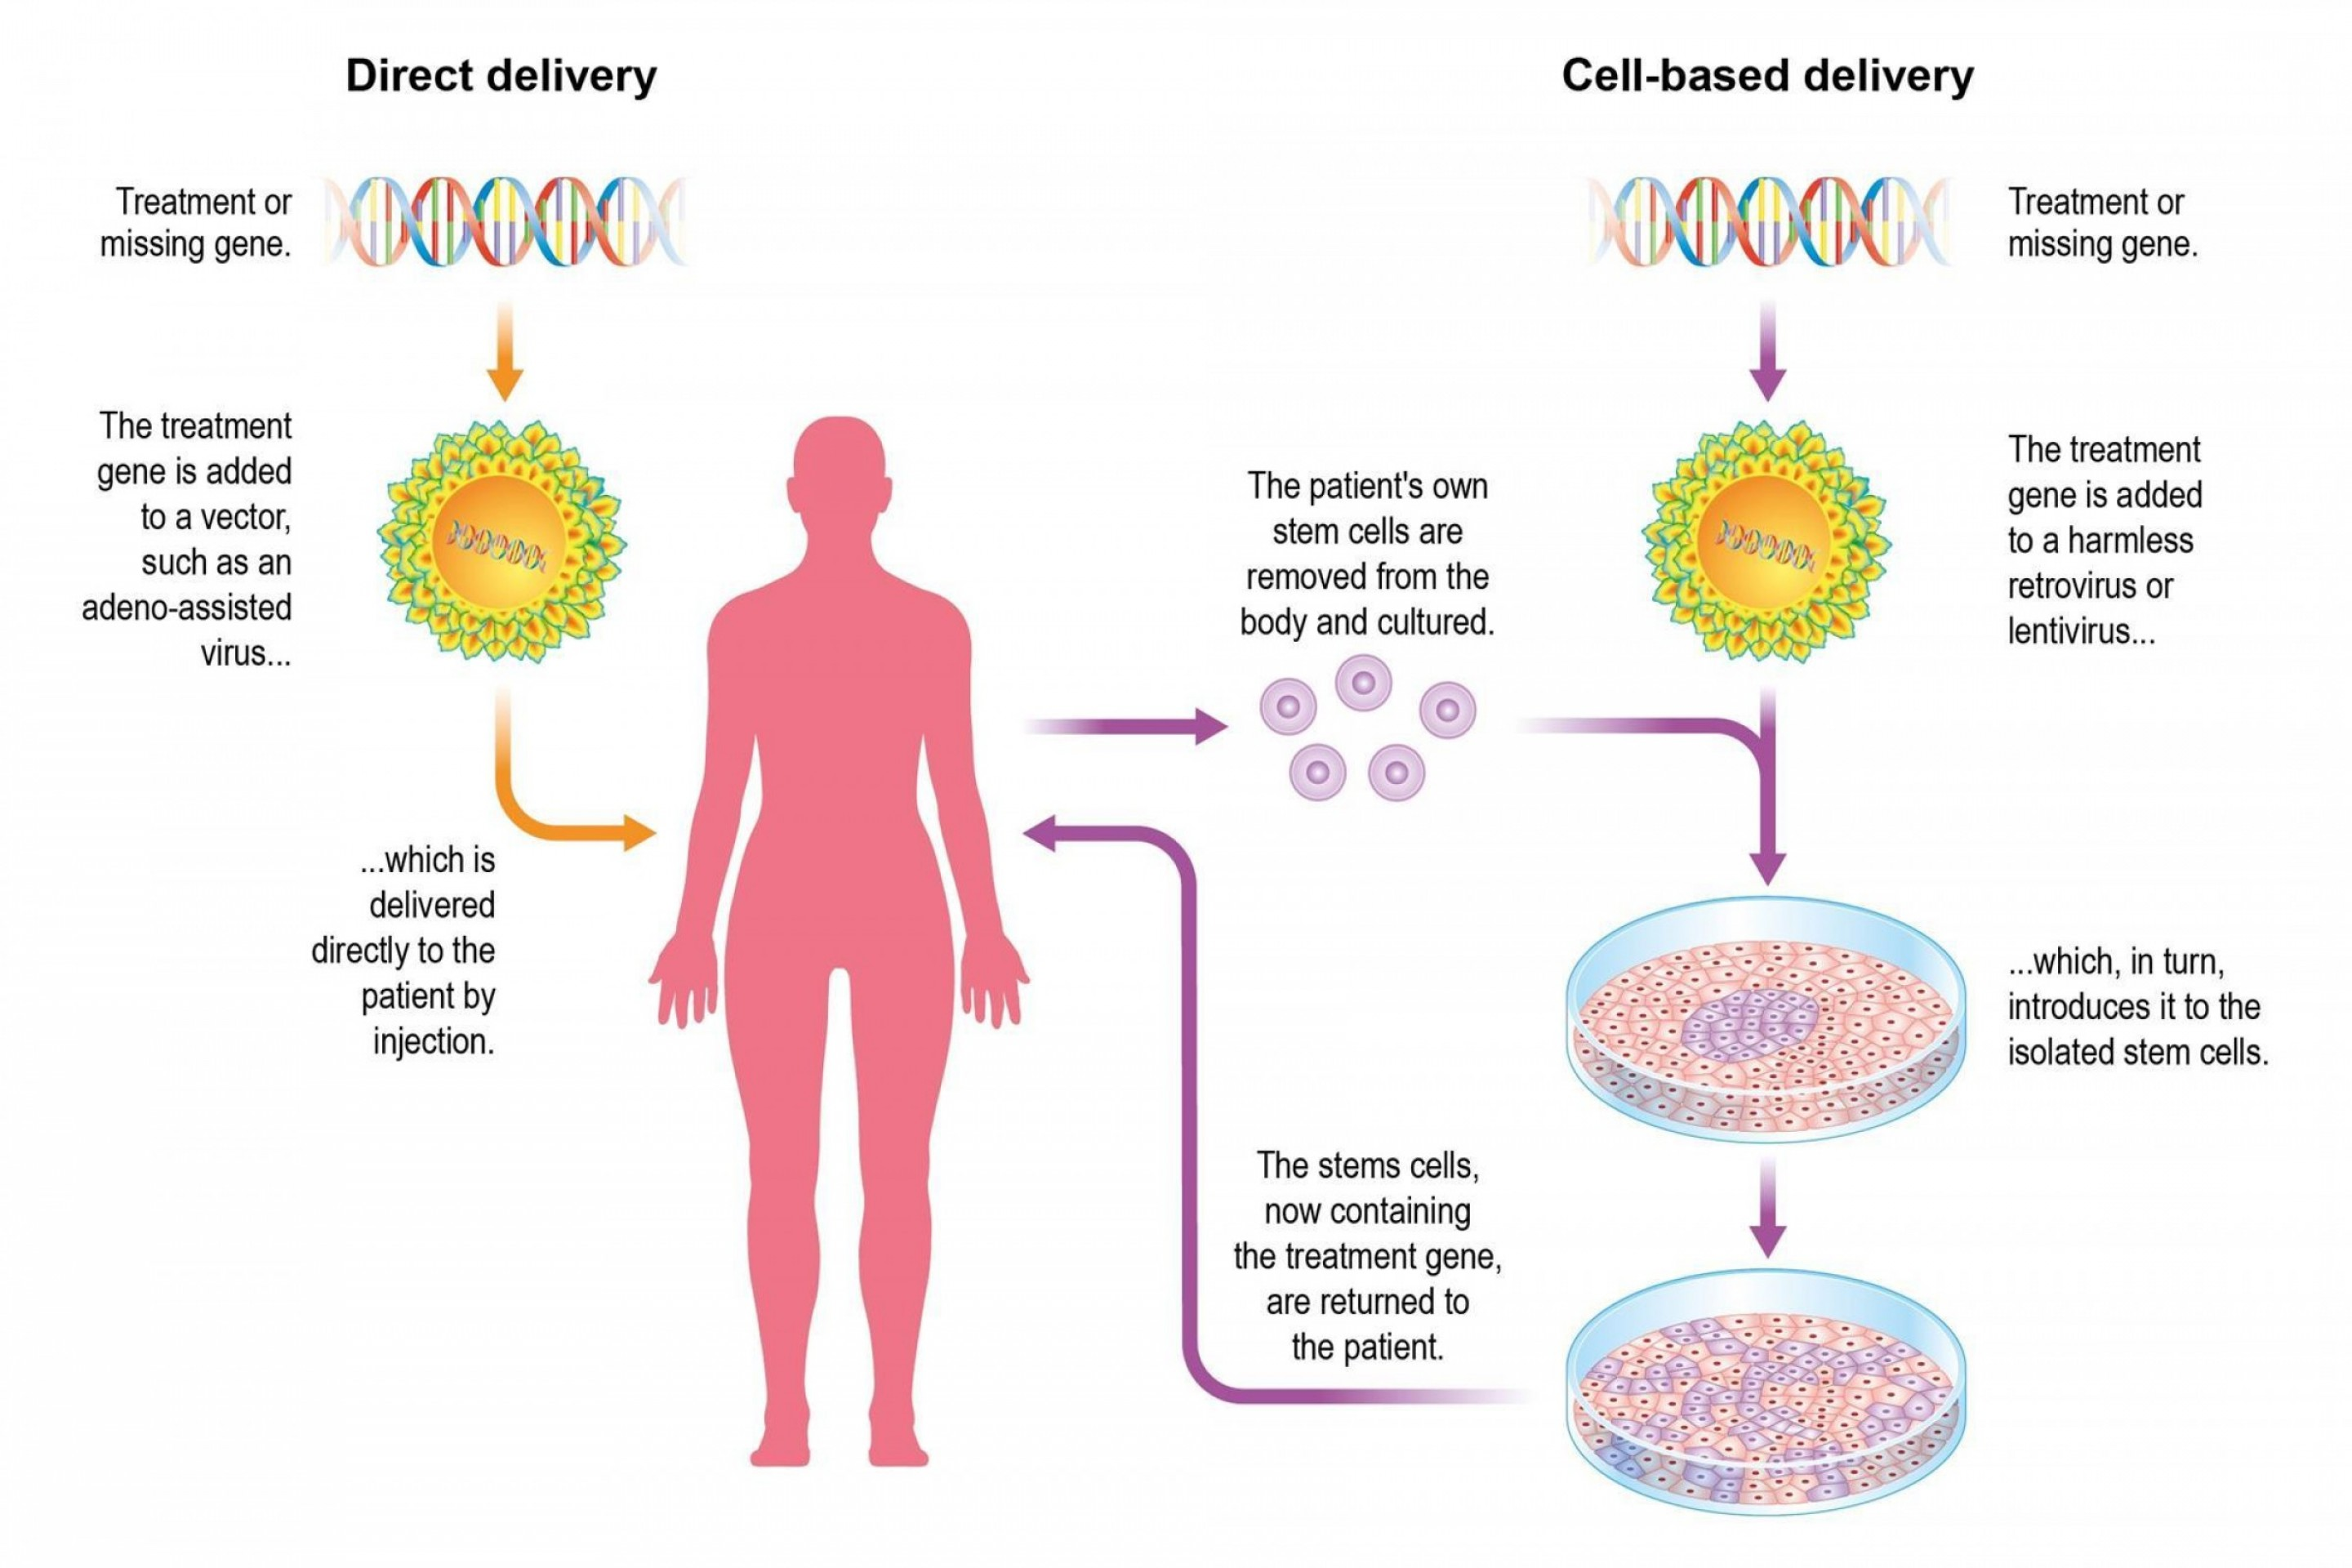 What Are Vectors Used For: Differences Between Viral And Non Viral Vectors Used For Gene Therapy